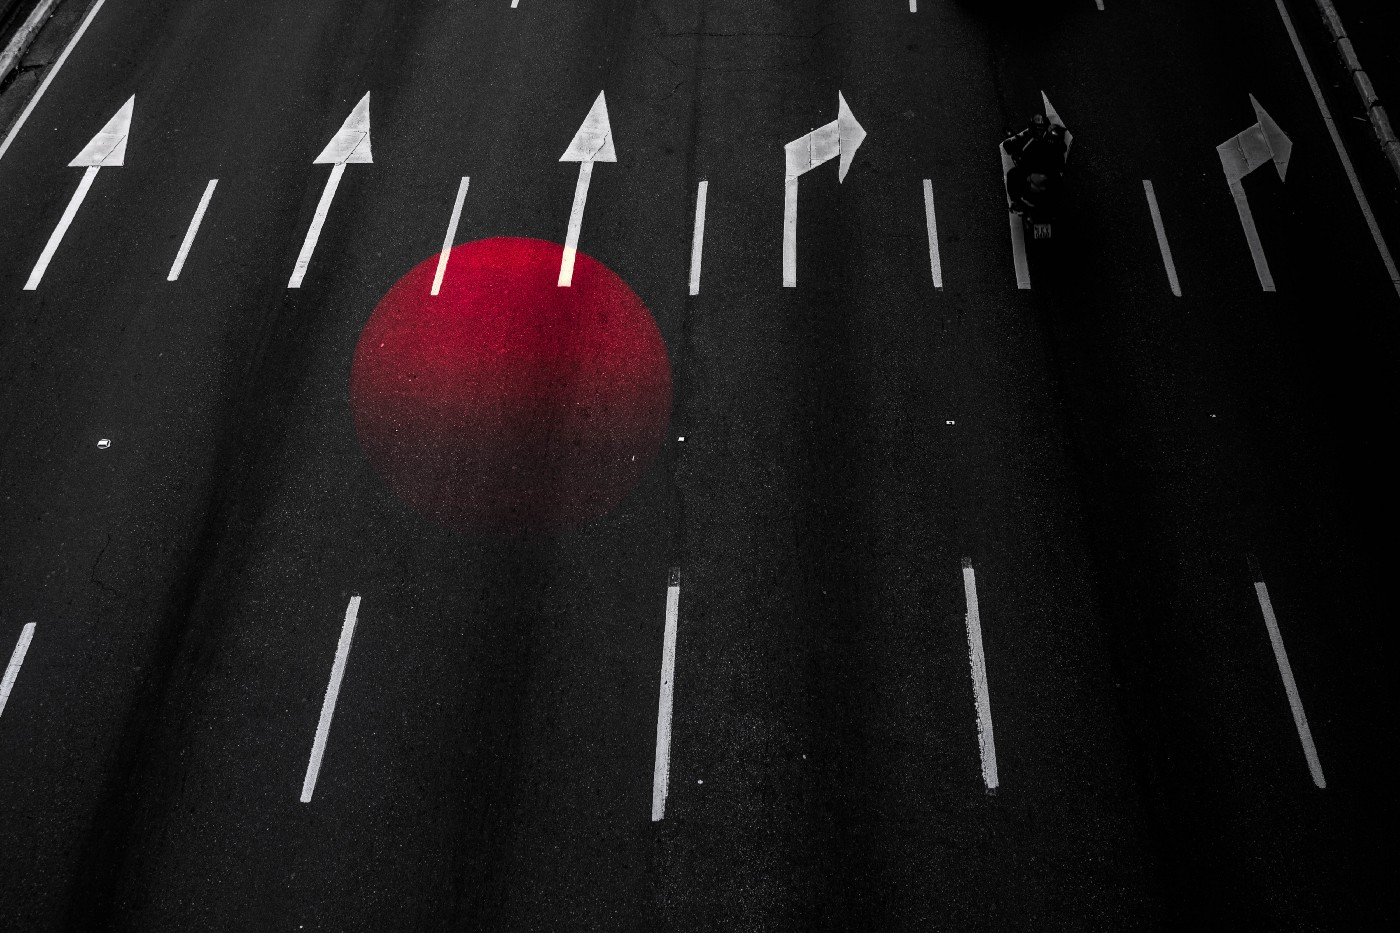 A roadway with some lanes marked with arrows pointing straight, others marking a turn, and a superimposed image of a red orb